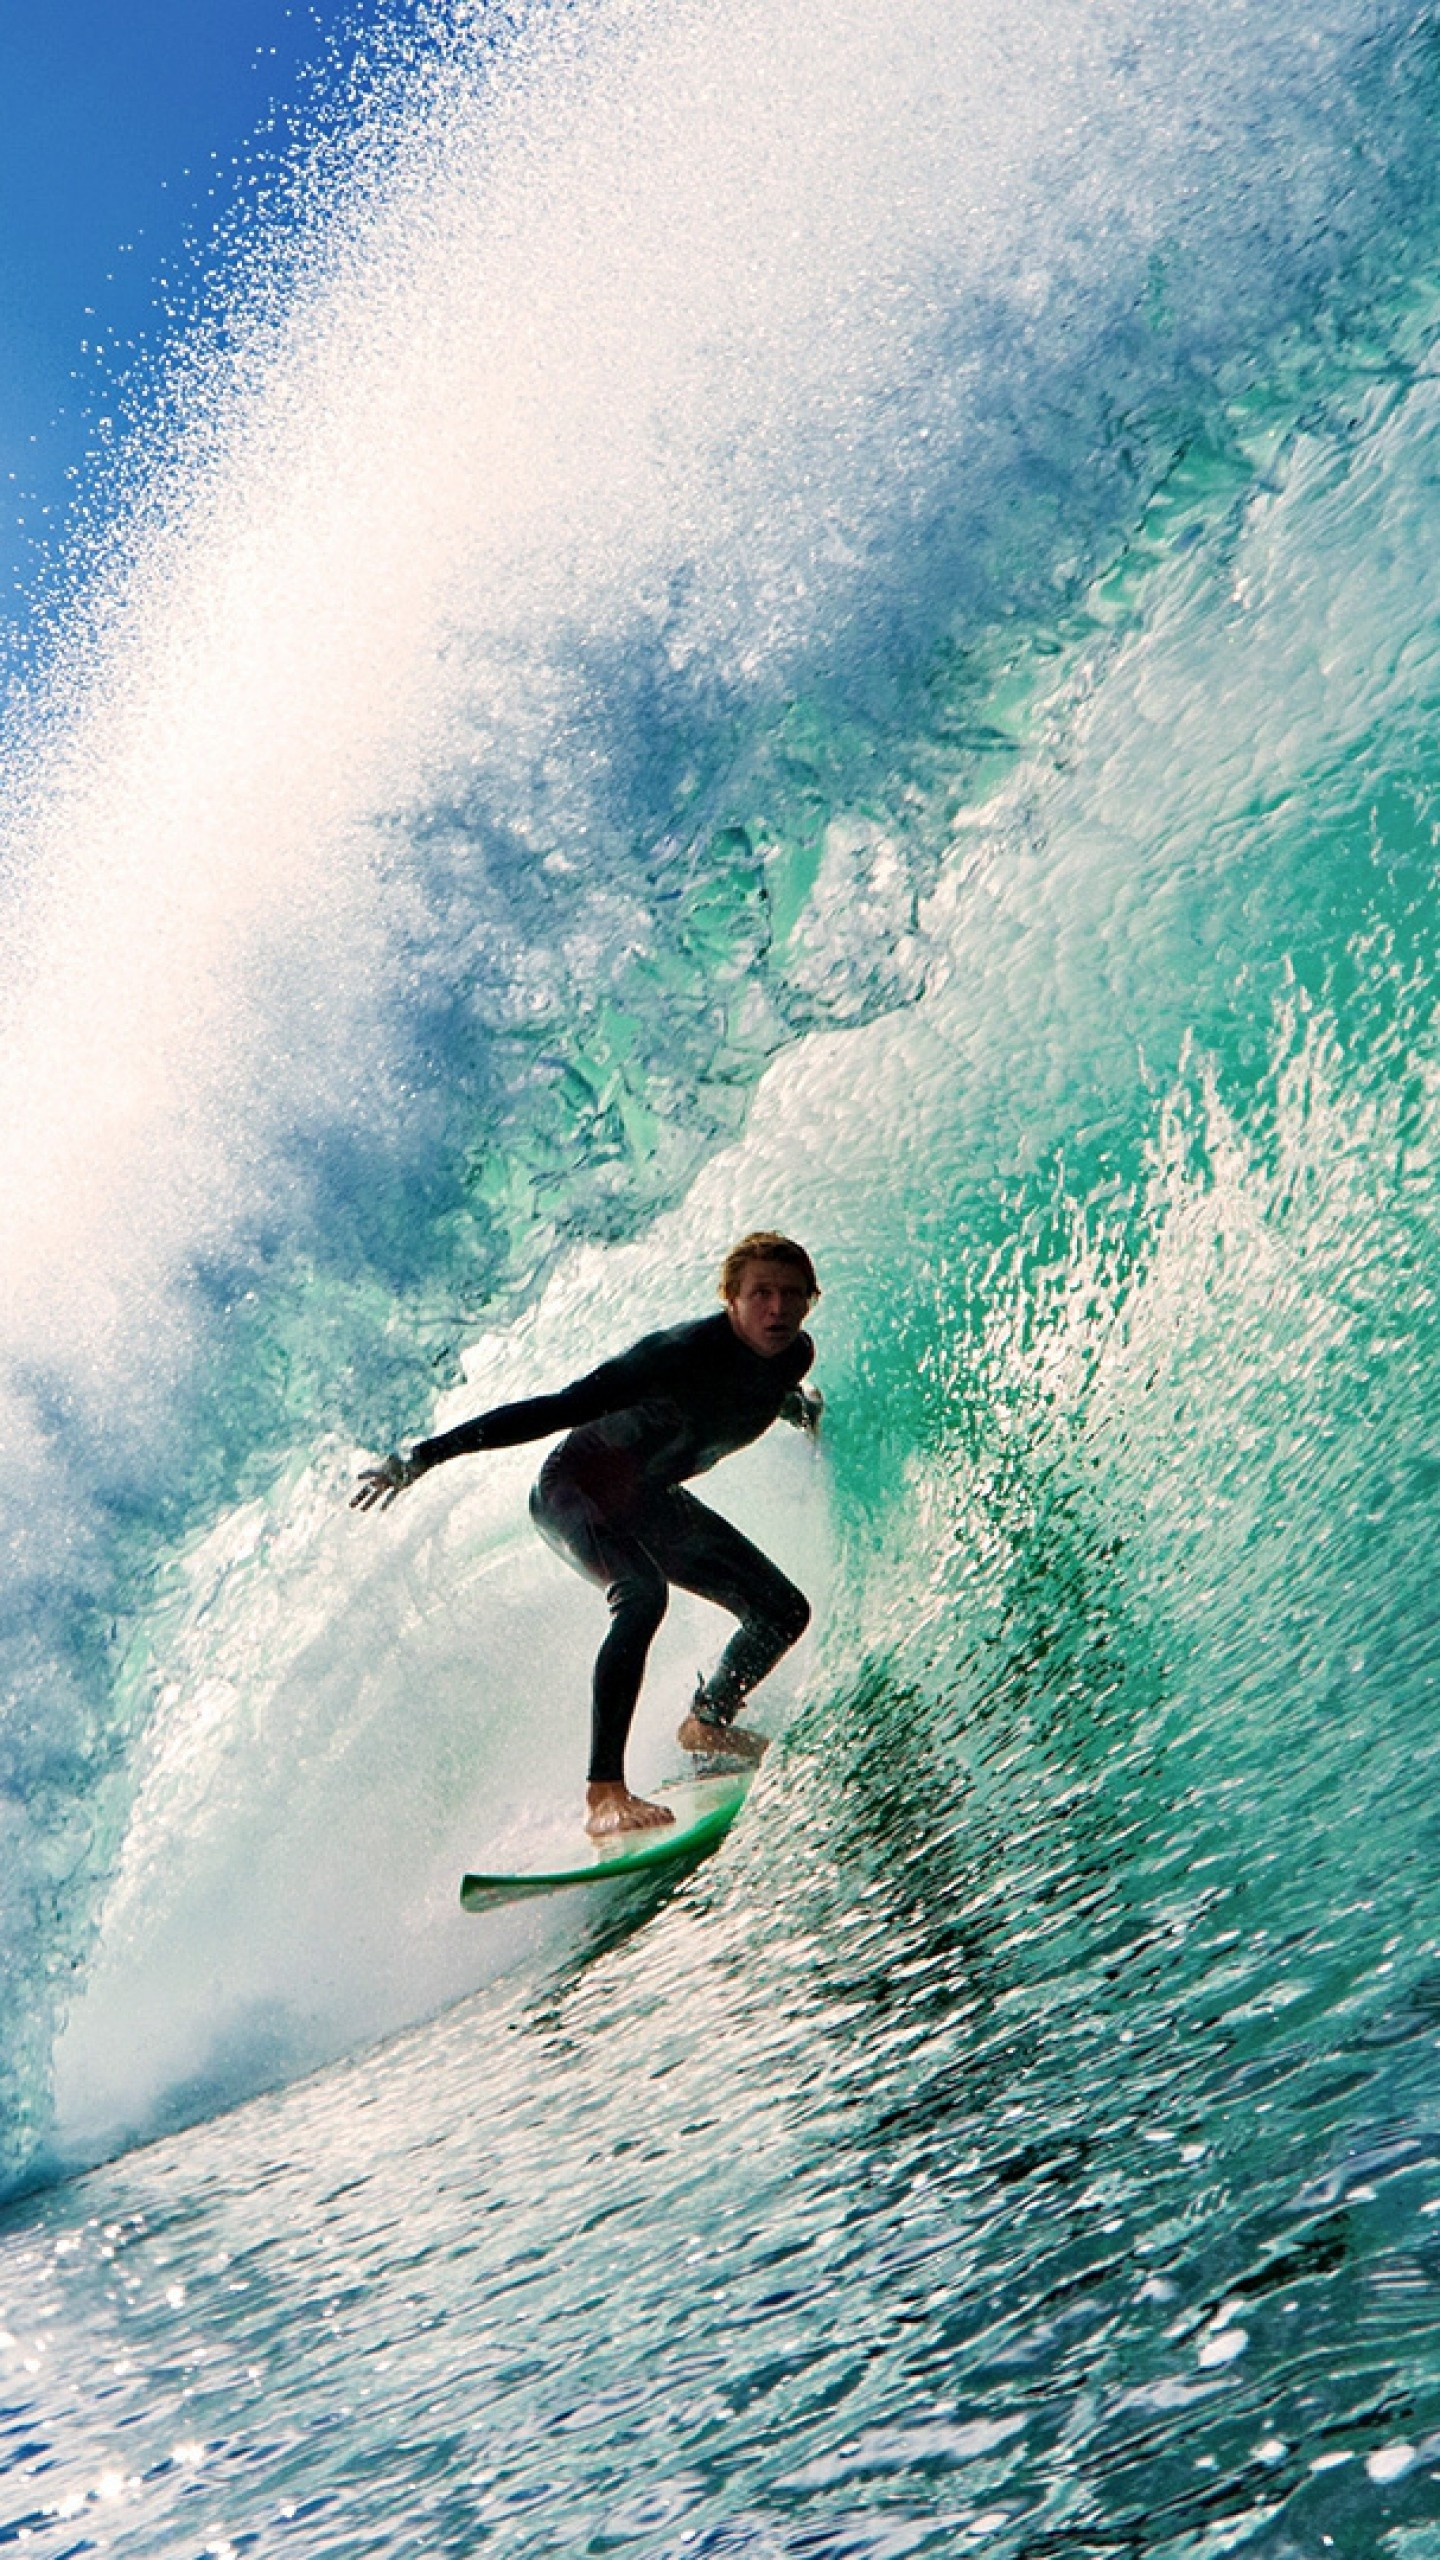 Surfing Wallpaper for iPhone 66 images 1440x2560